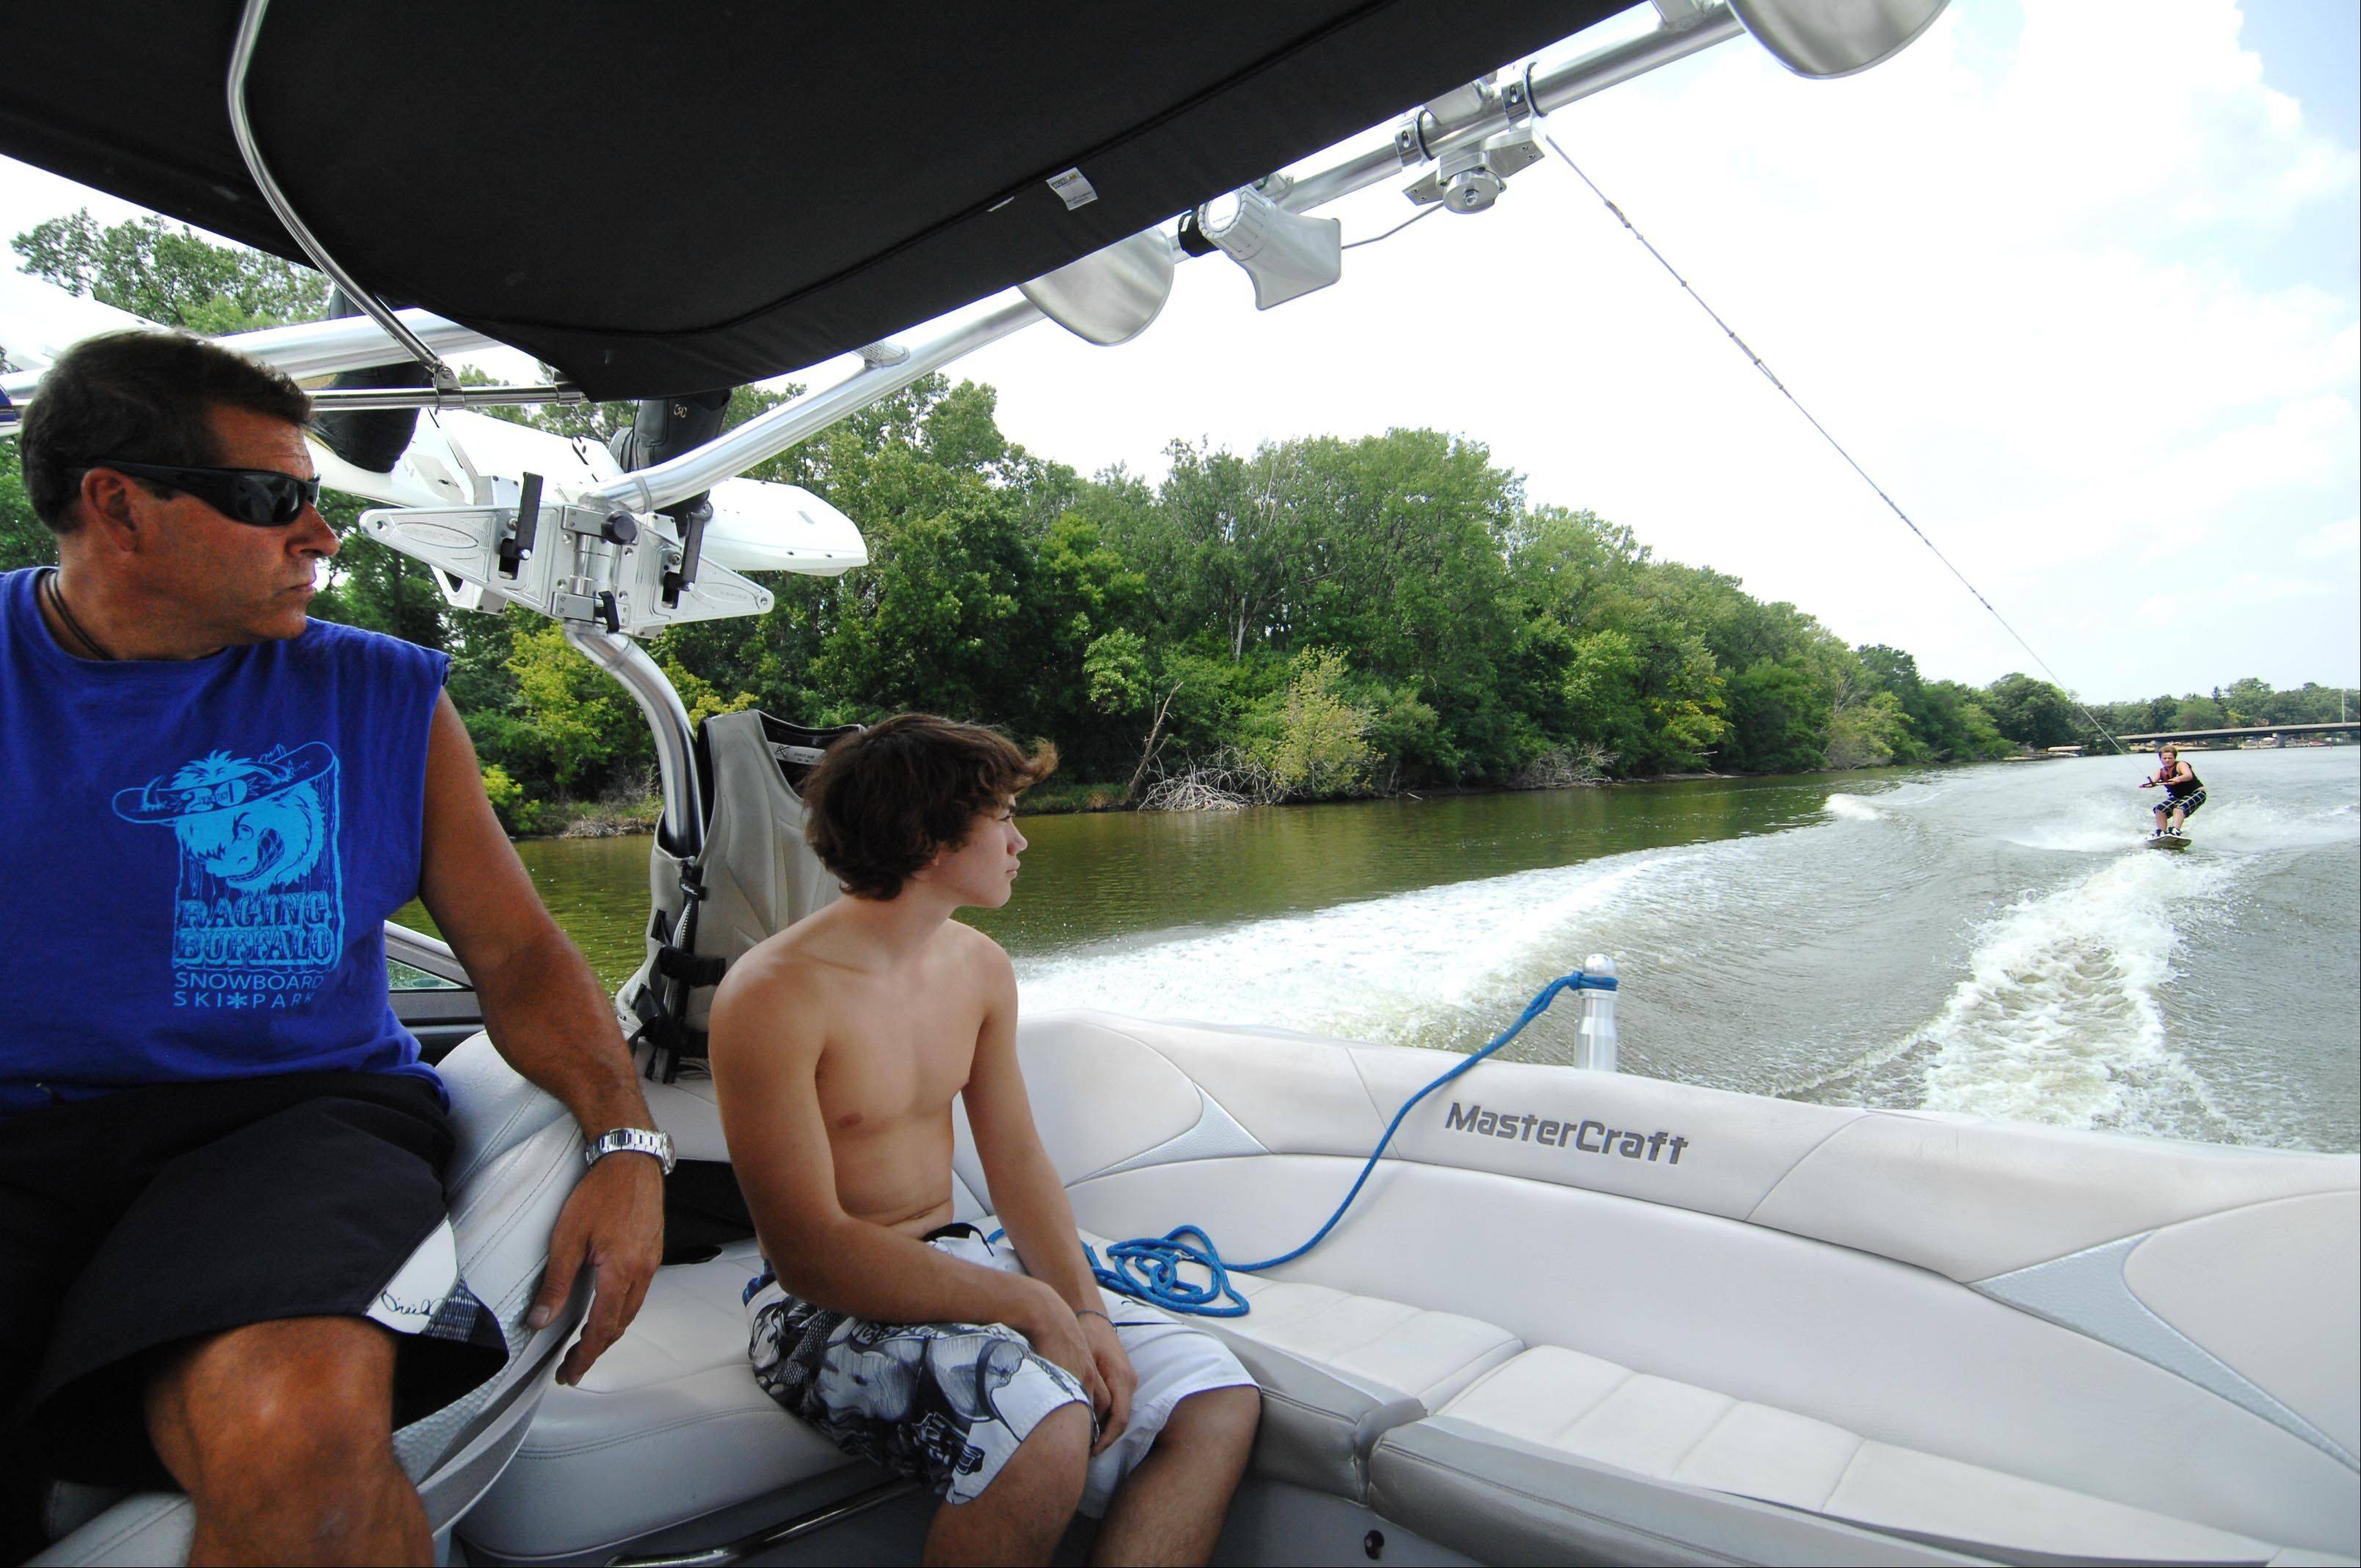 Xavier Contreras, 17, of Port Barrington, and driver Keith Duck watch as Devin Patterson, 13, of West Dundee, takes a wakeboard lesson on the Fox River in Cary Monday.